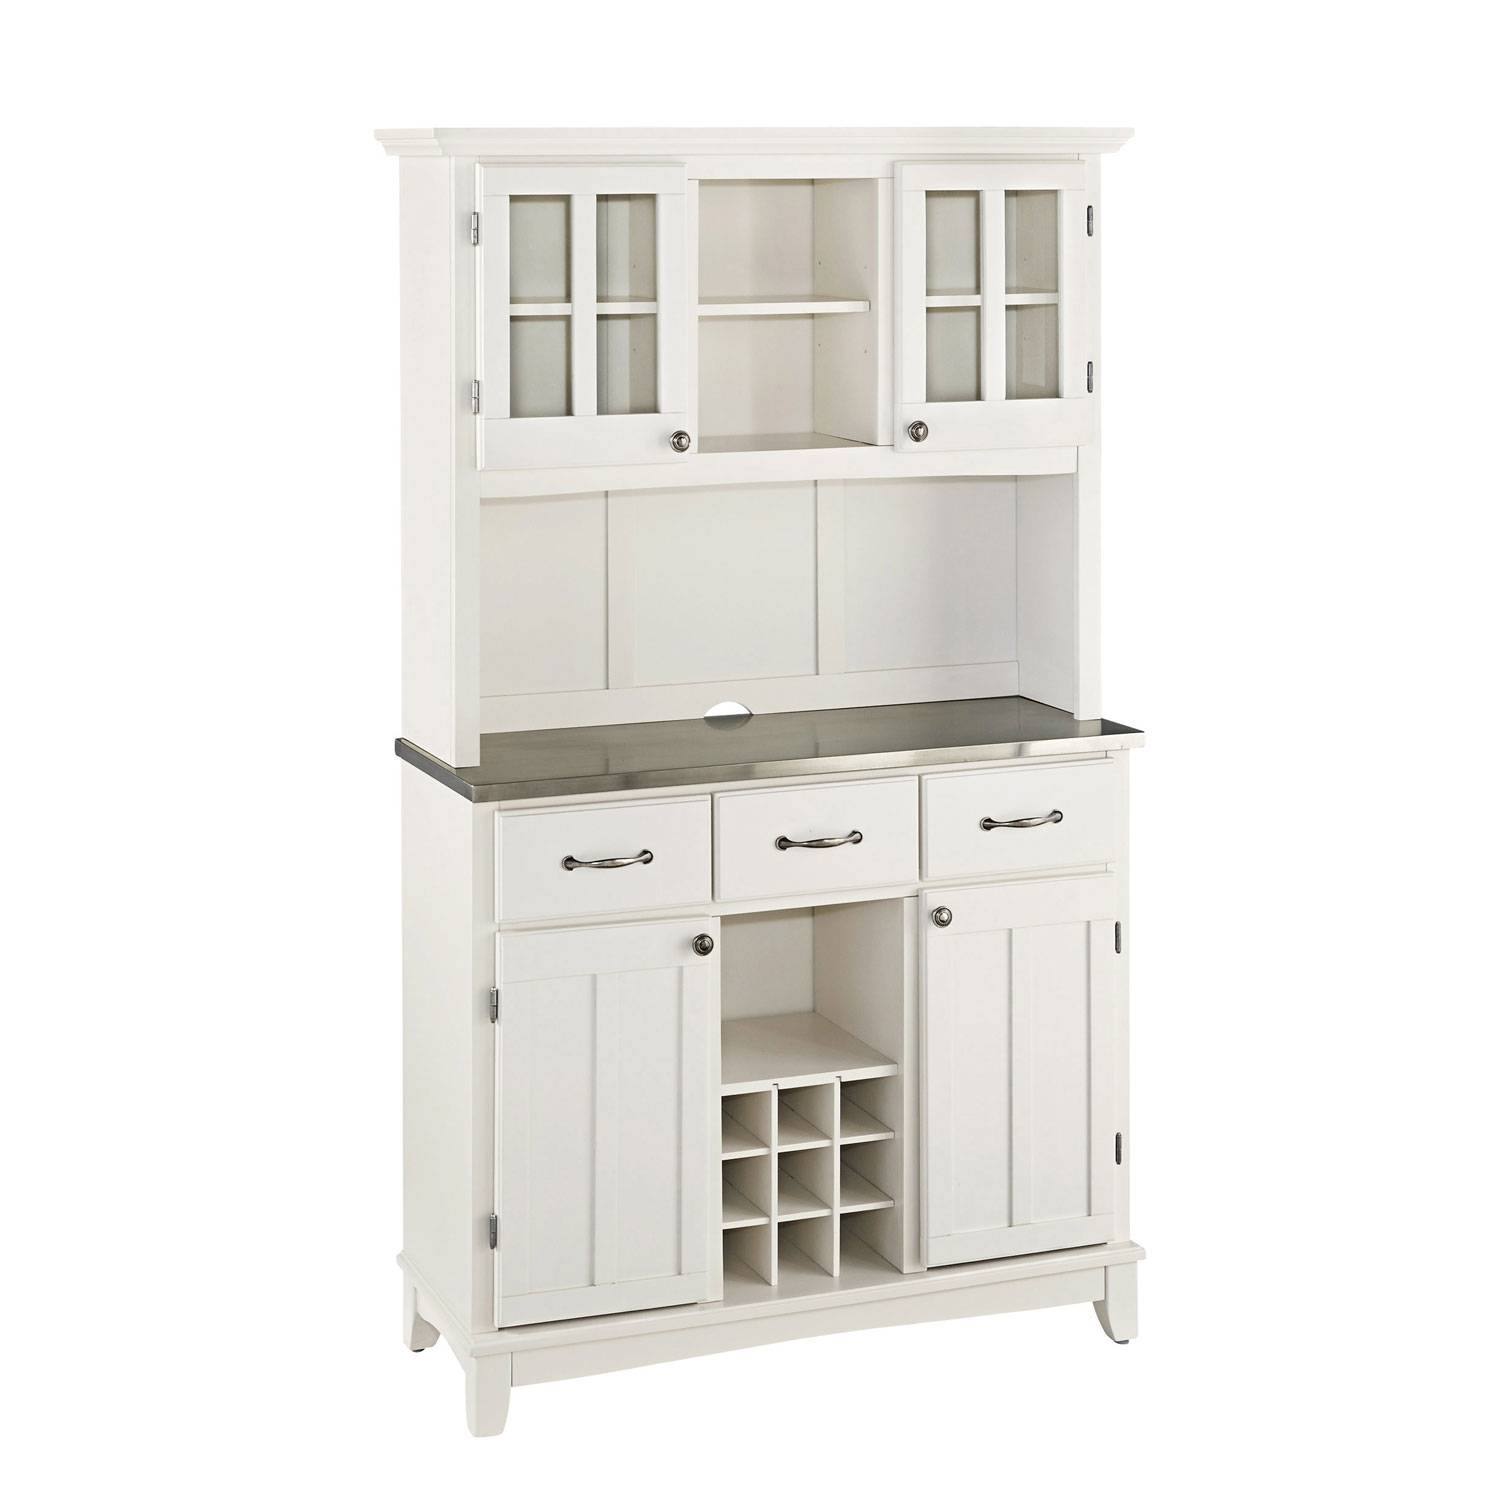 Buffets & Sideboards On Sale | Bellacor in White Glass Sideboards (Image 7 of 30)